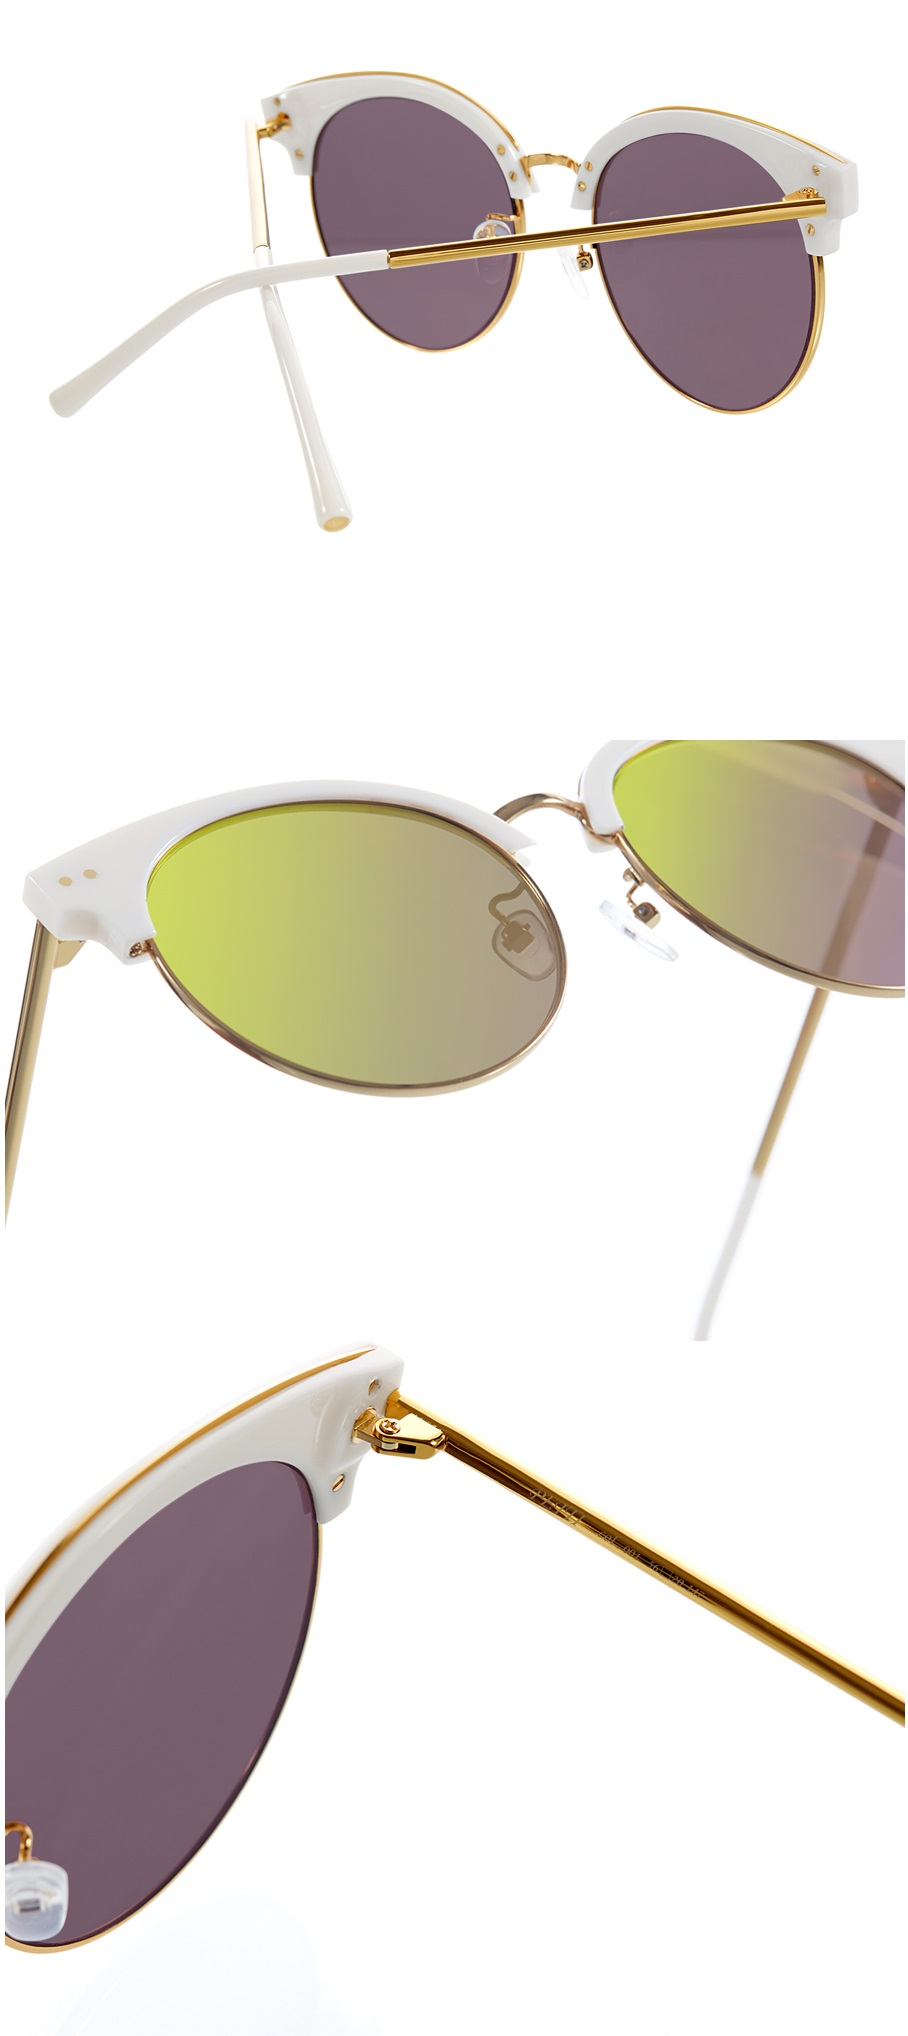 BVH Sunglasses